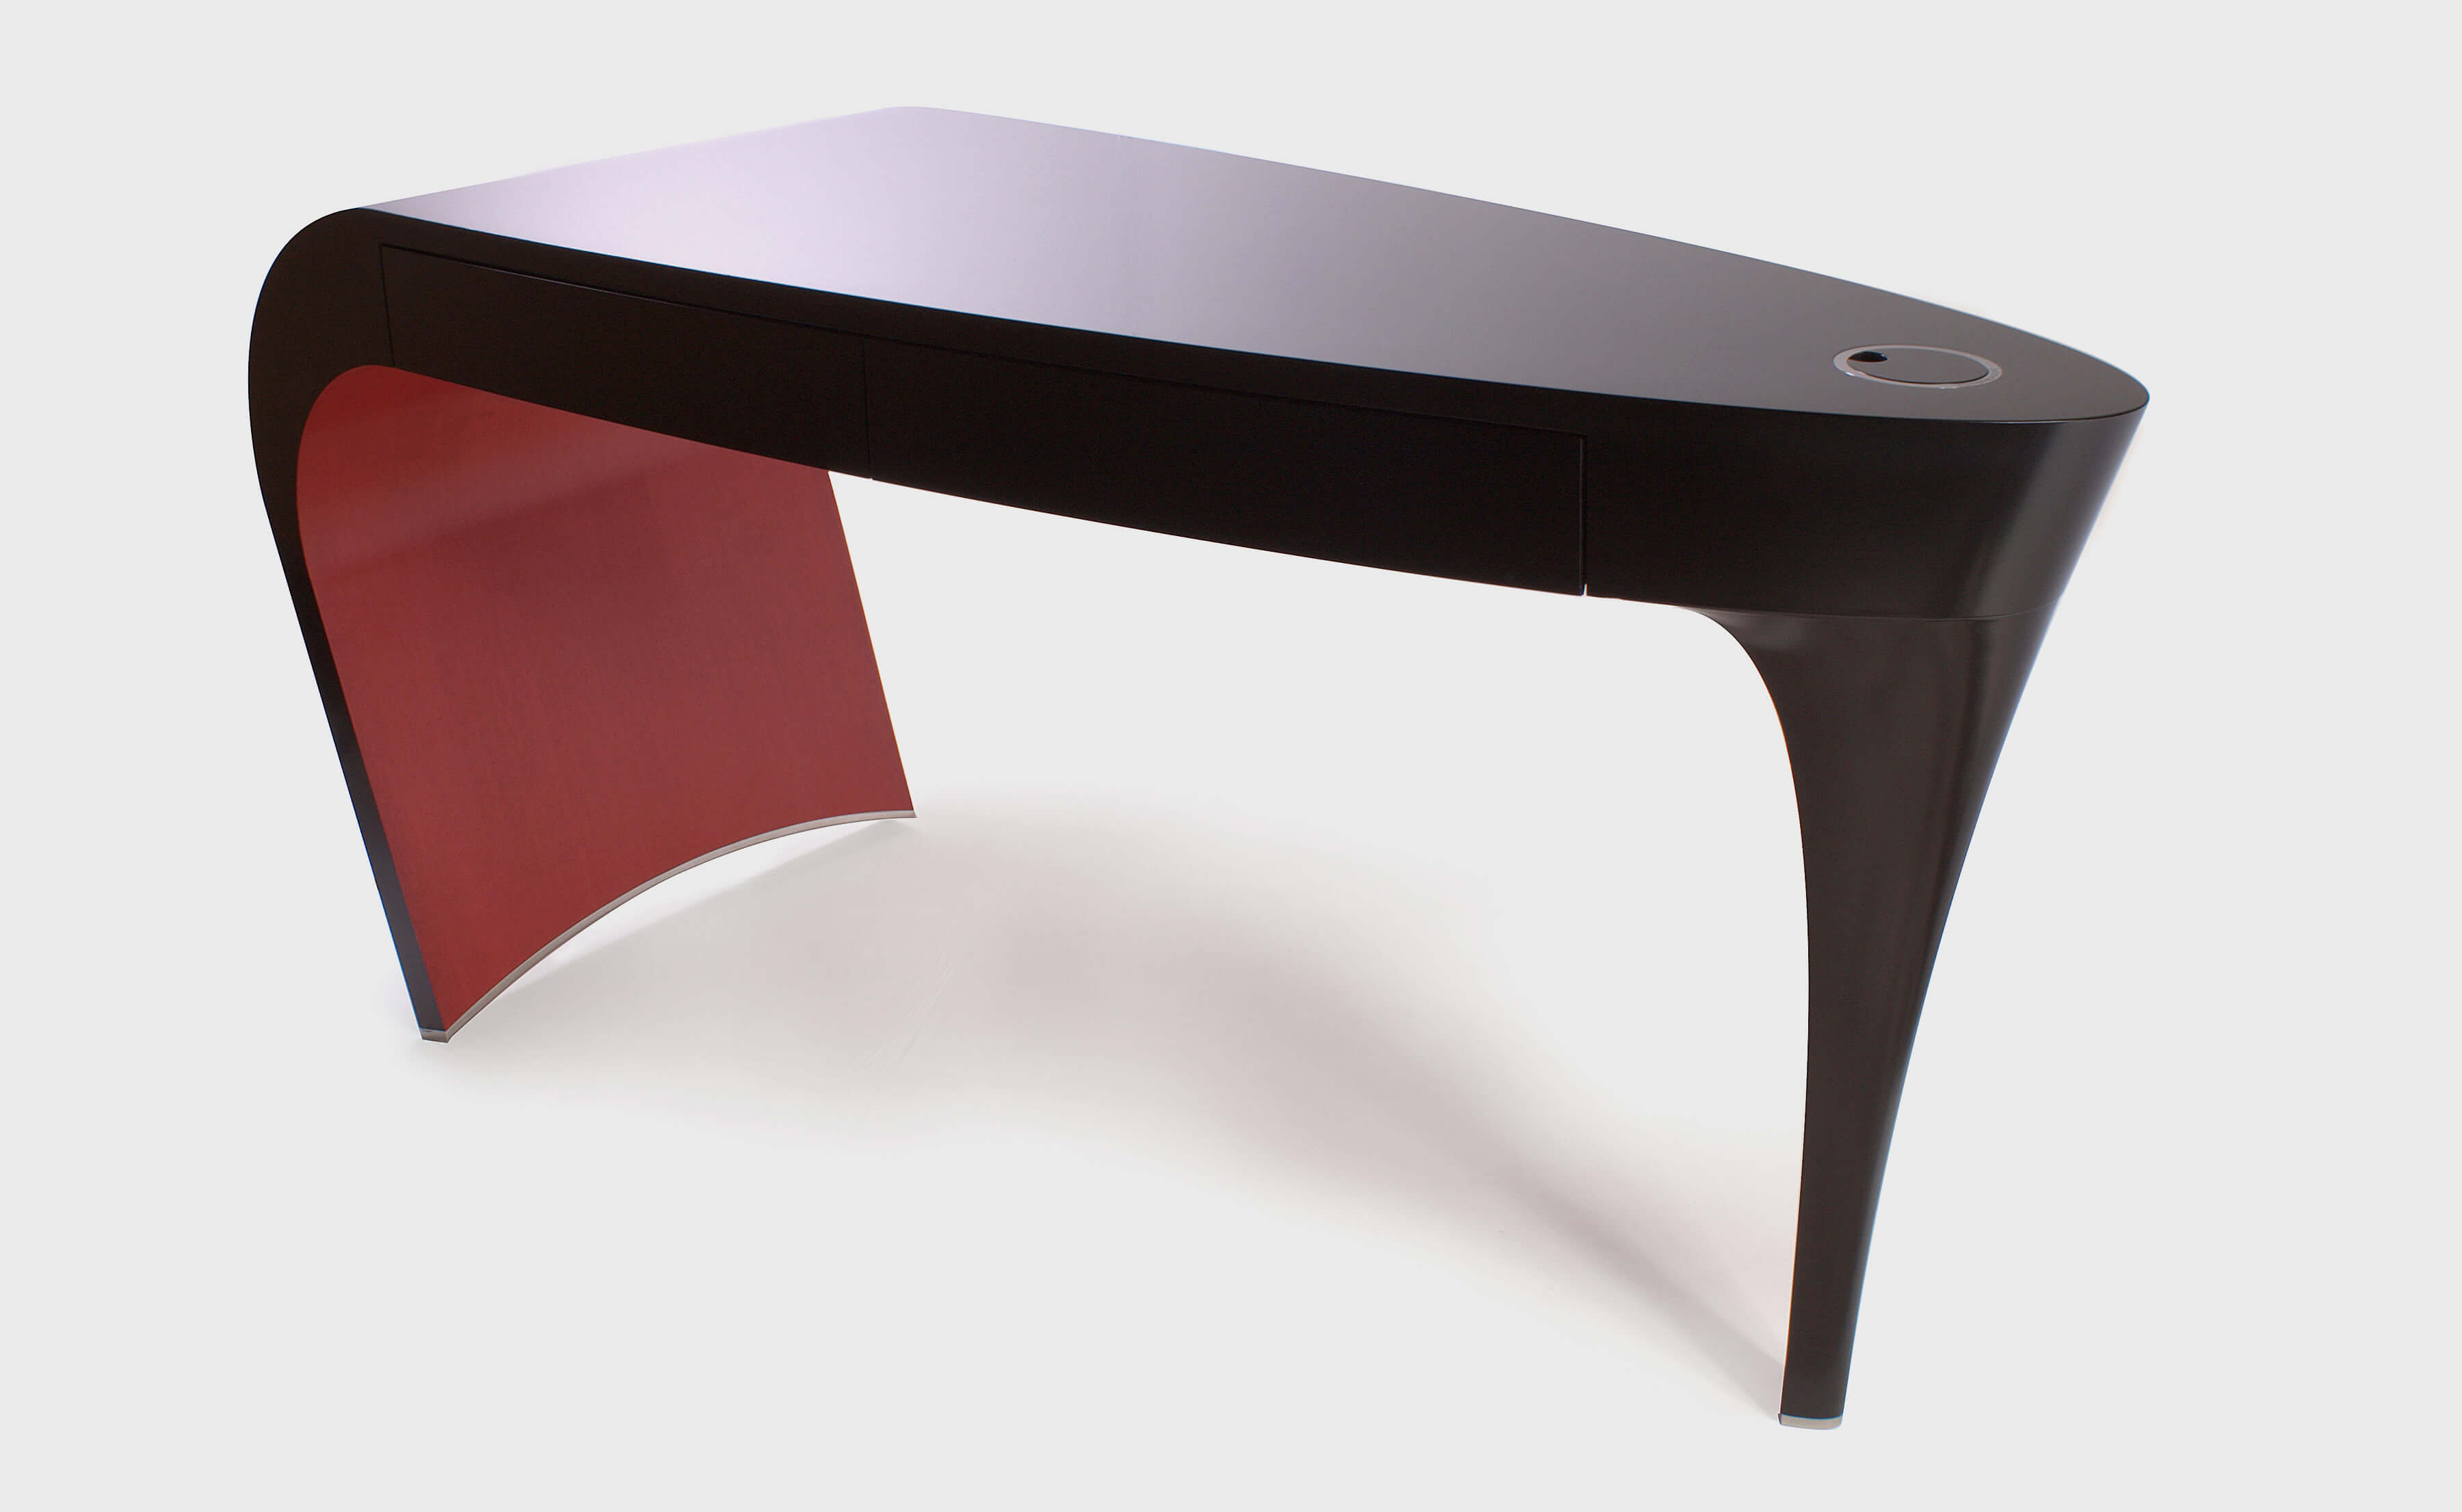 luxury japanned dressing table in black with red detail called Stiletto.